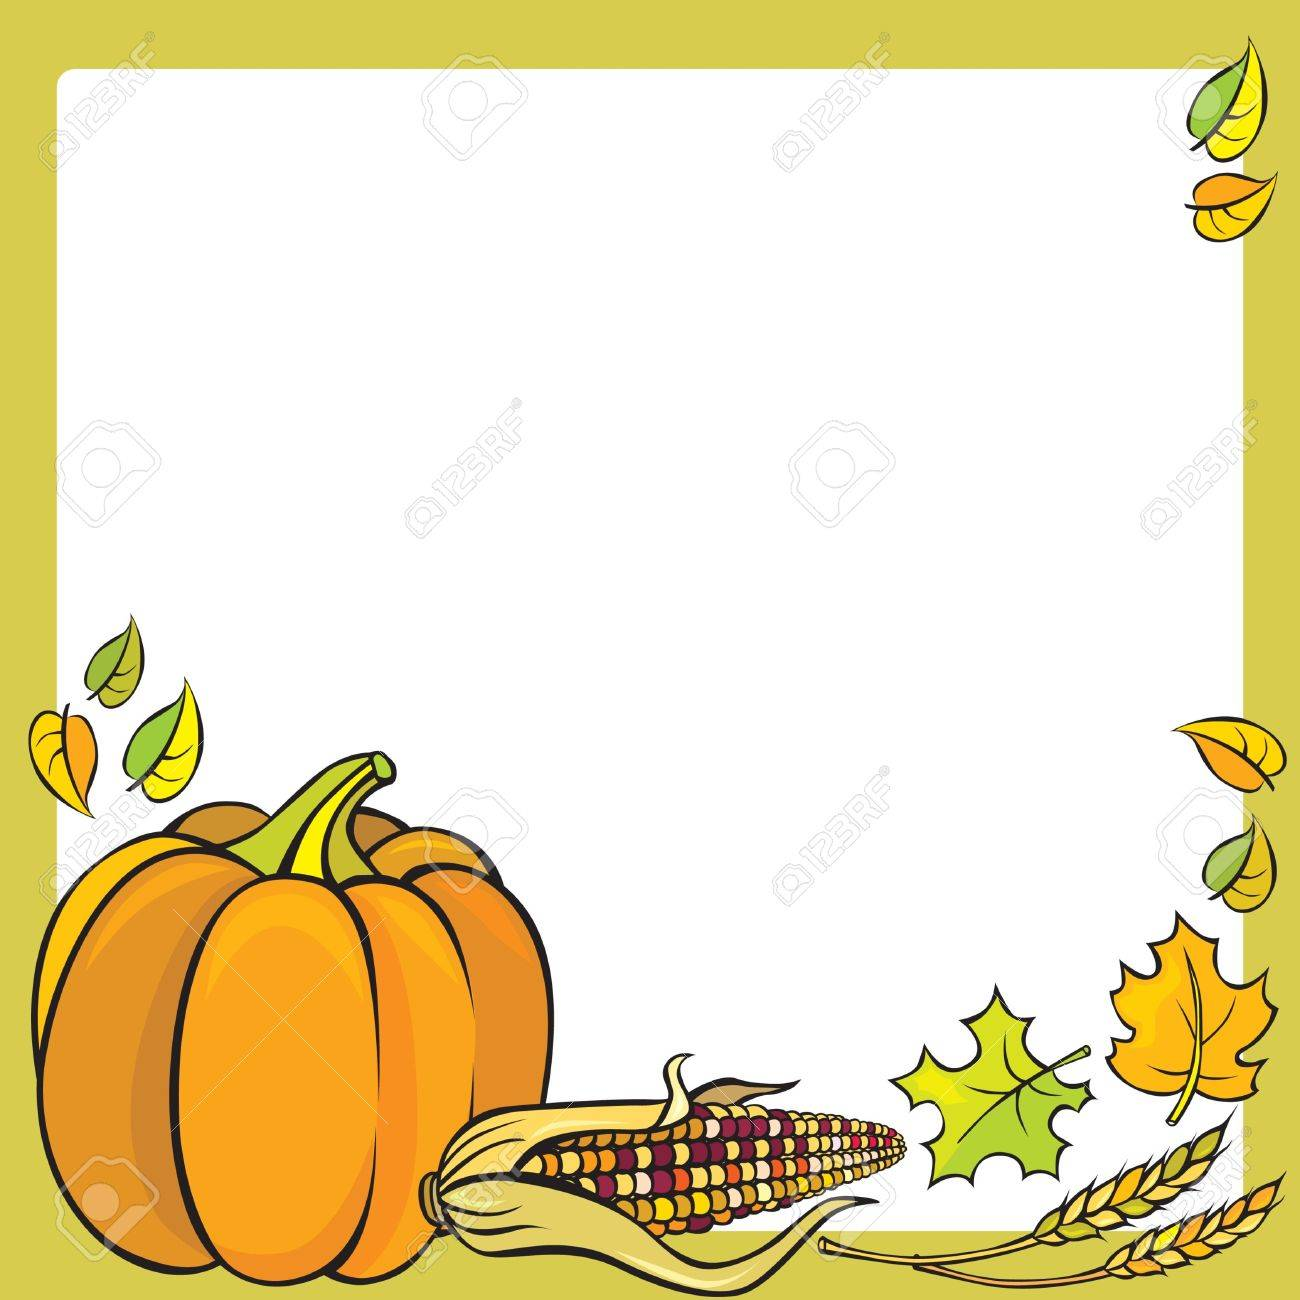 Thanksgiving Frame Stock Vector - 10673666